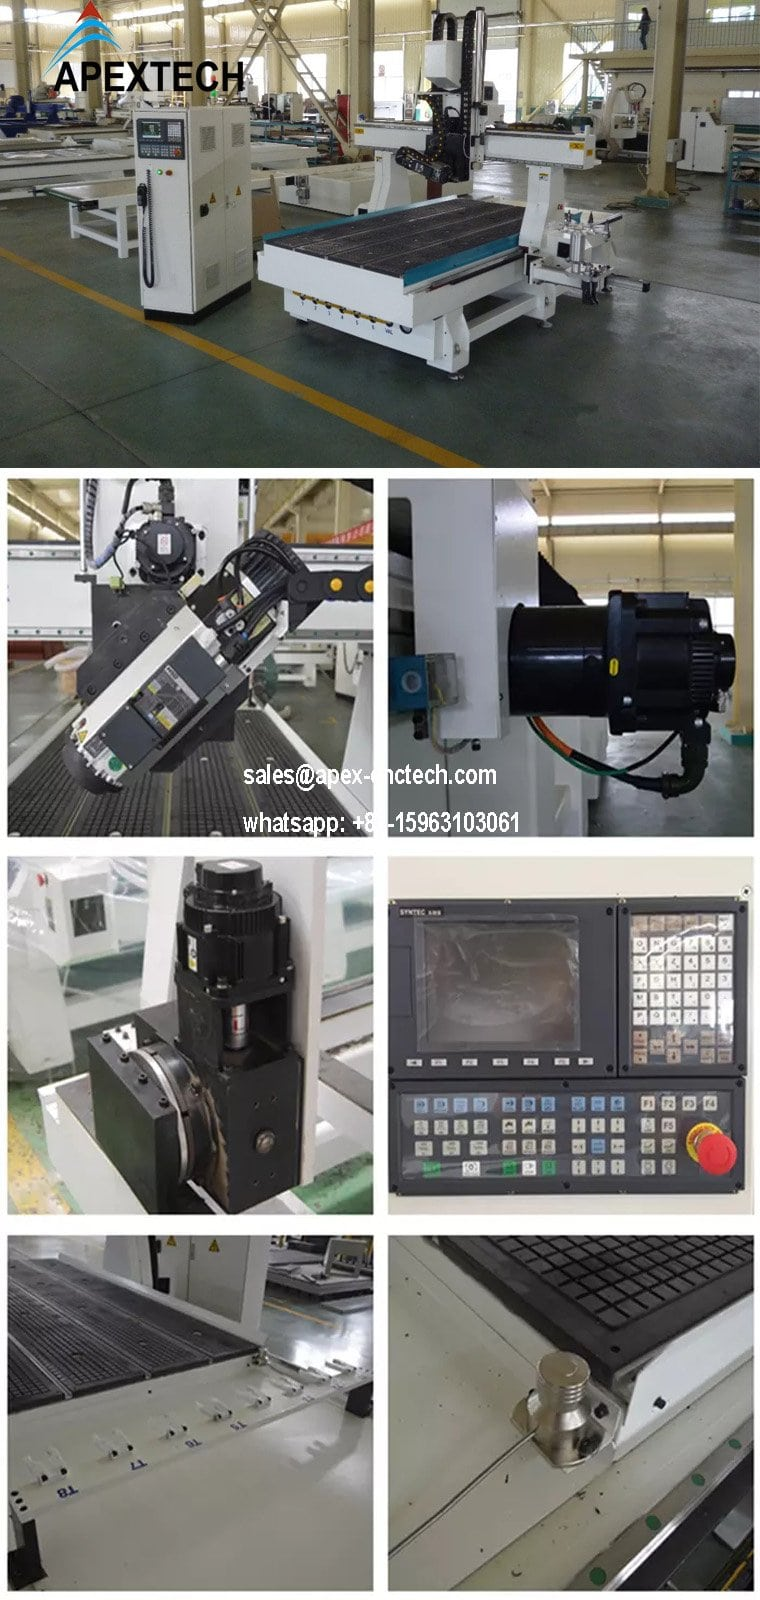 CNC Router Machine 4 Axis Spindle Rotating 180 Degree China Cnc Machine